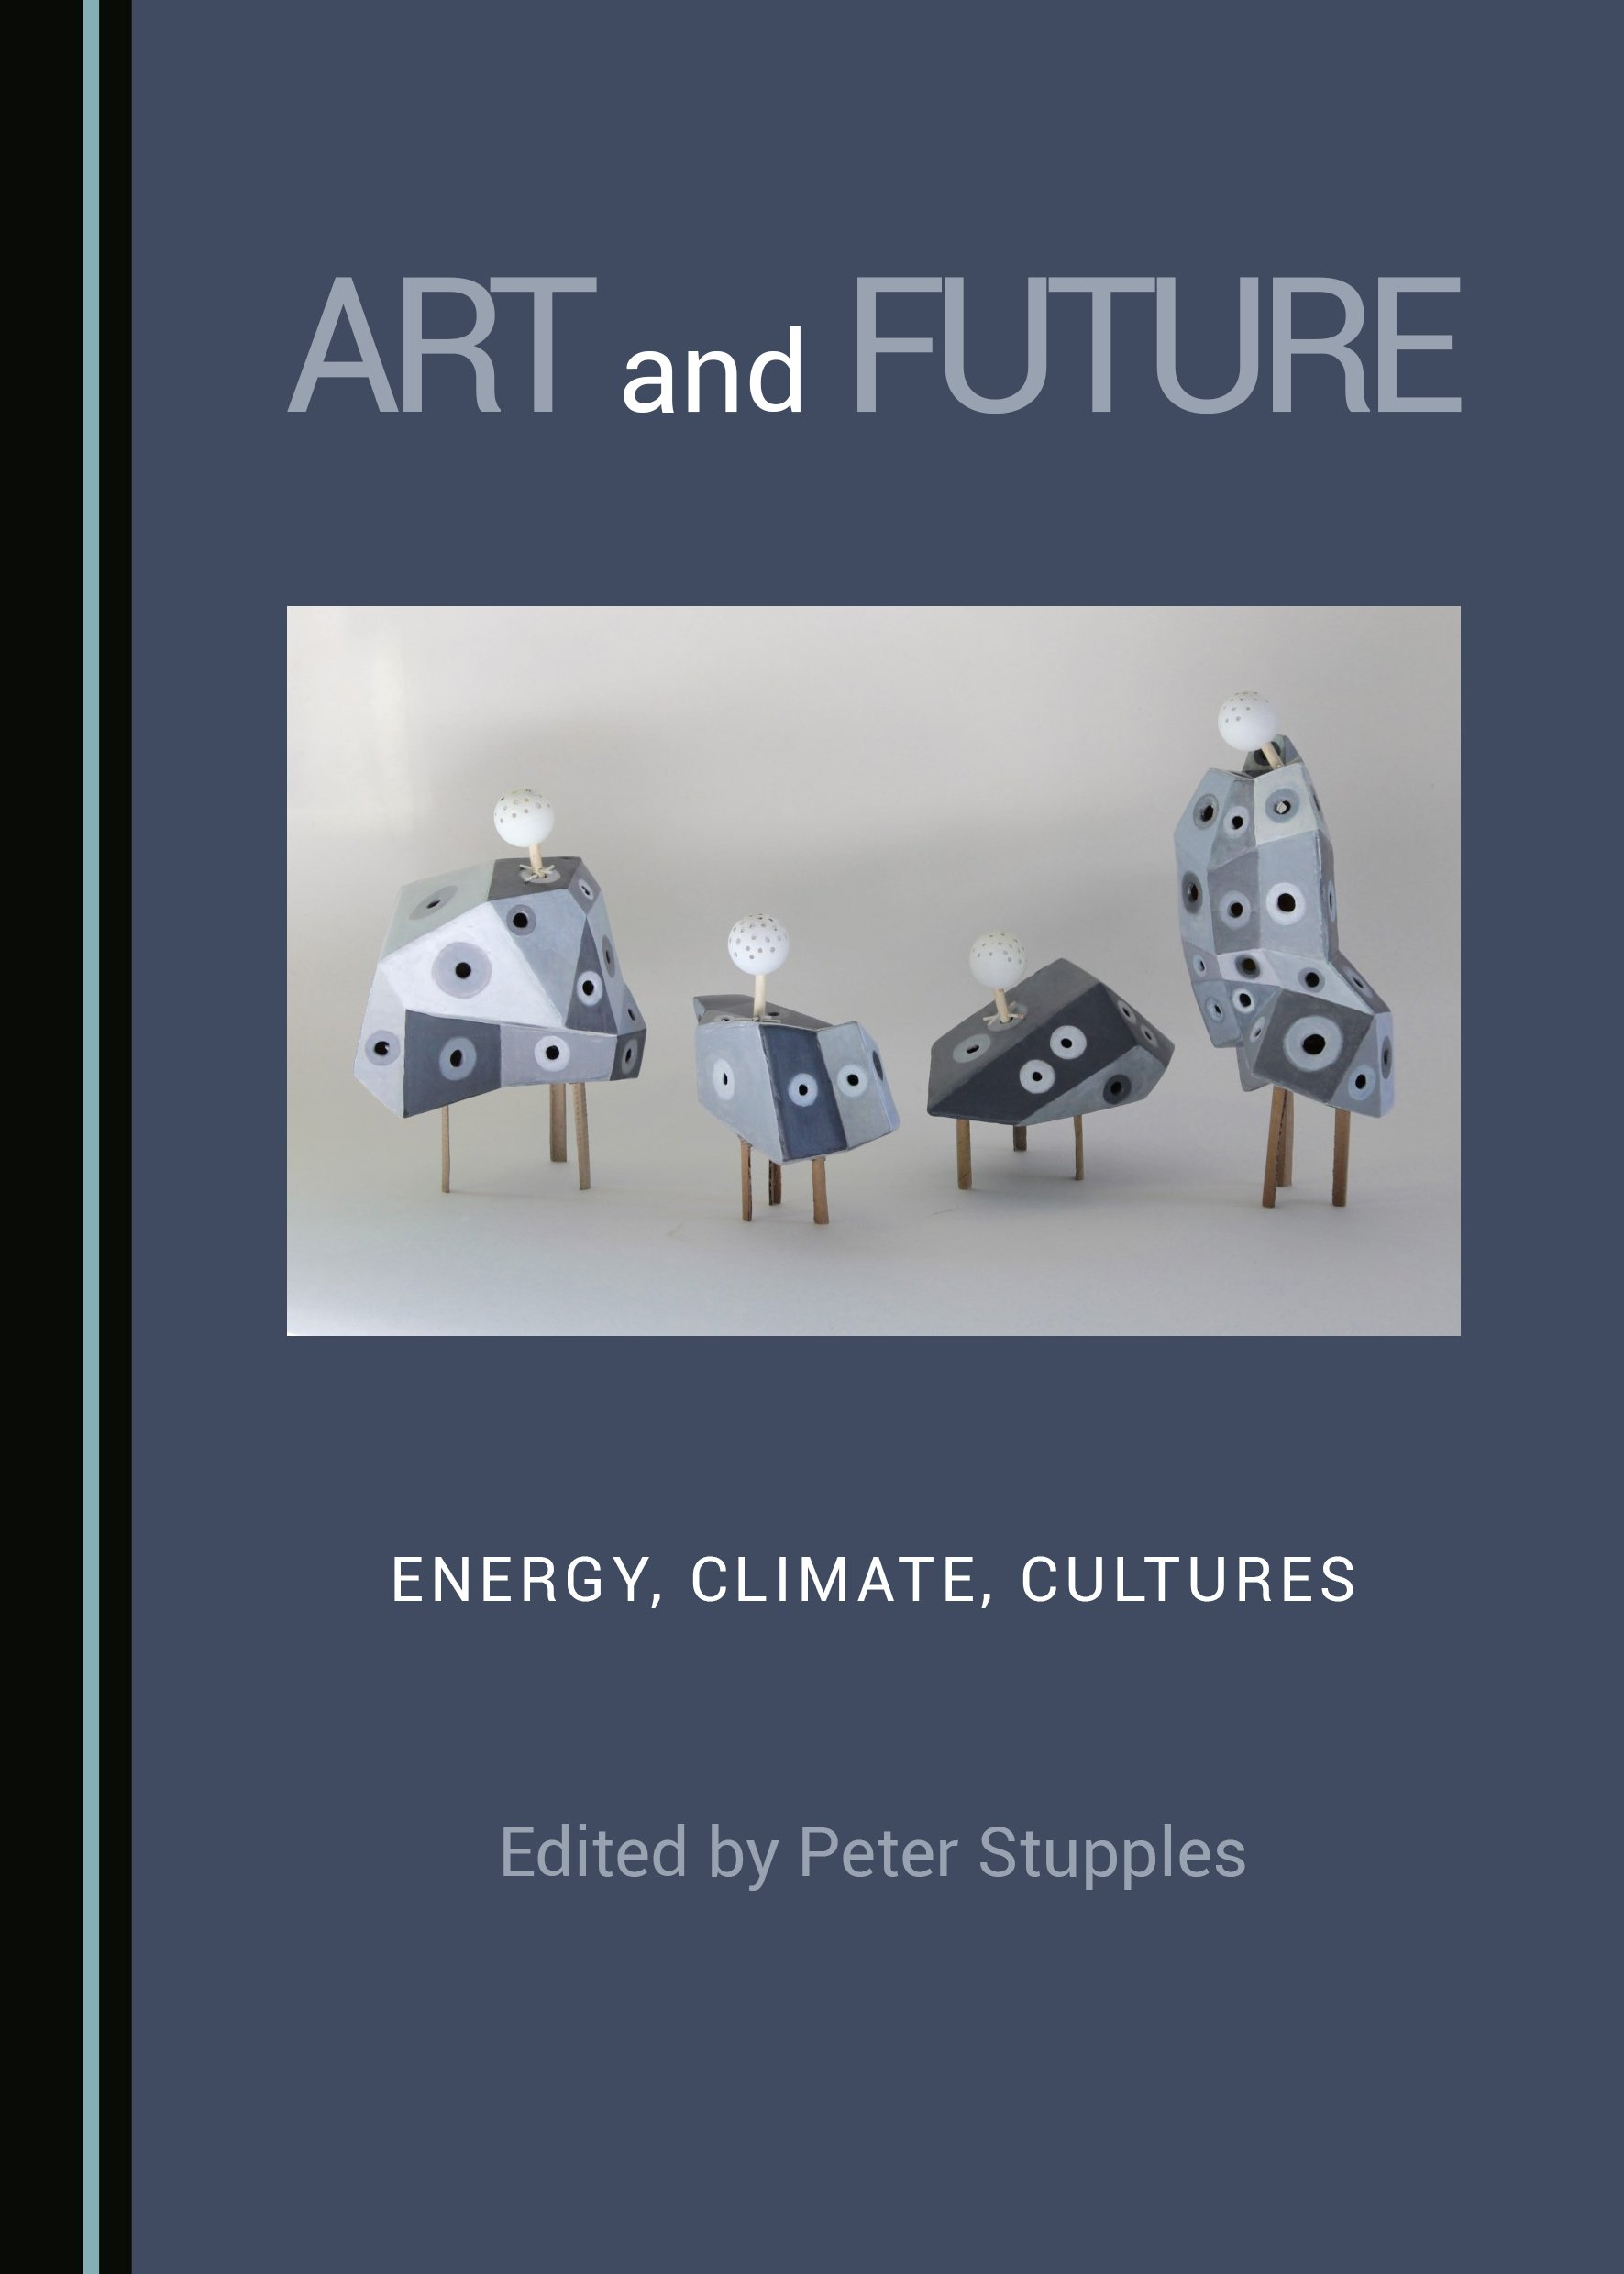 Art and Future: Energy, Climate, Cultures